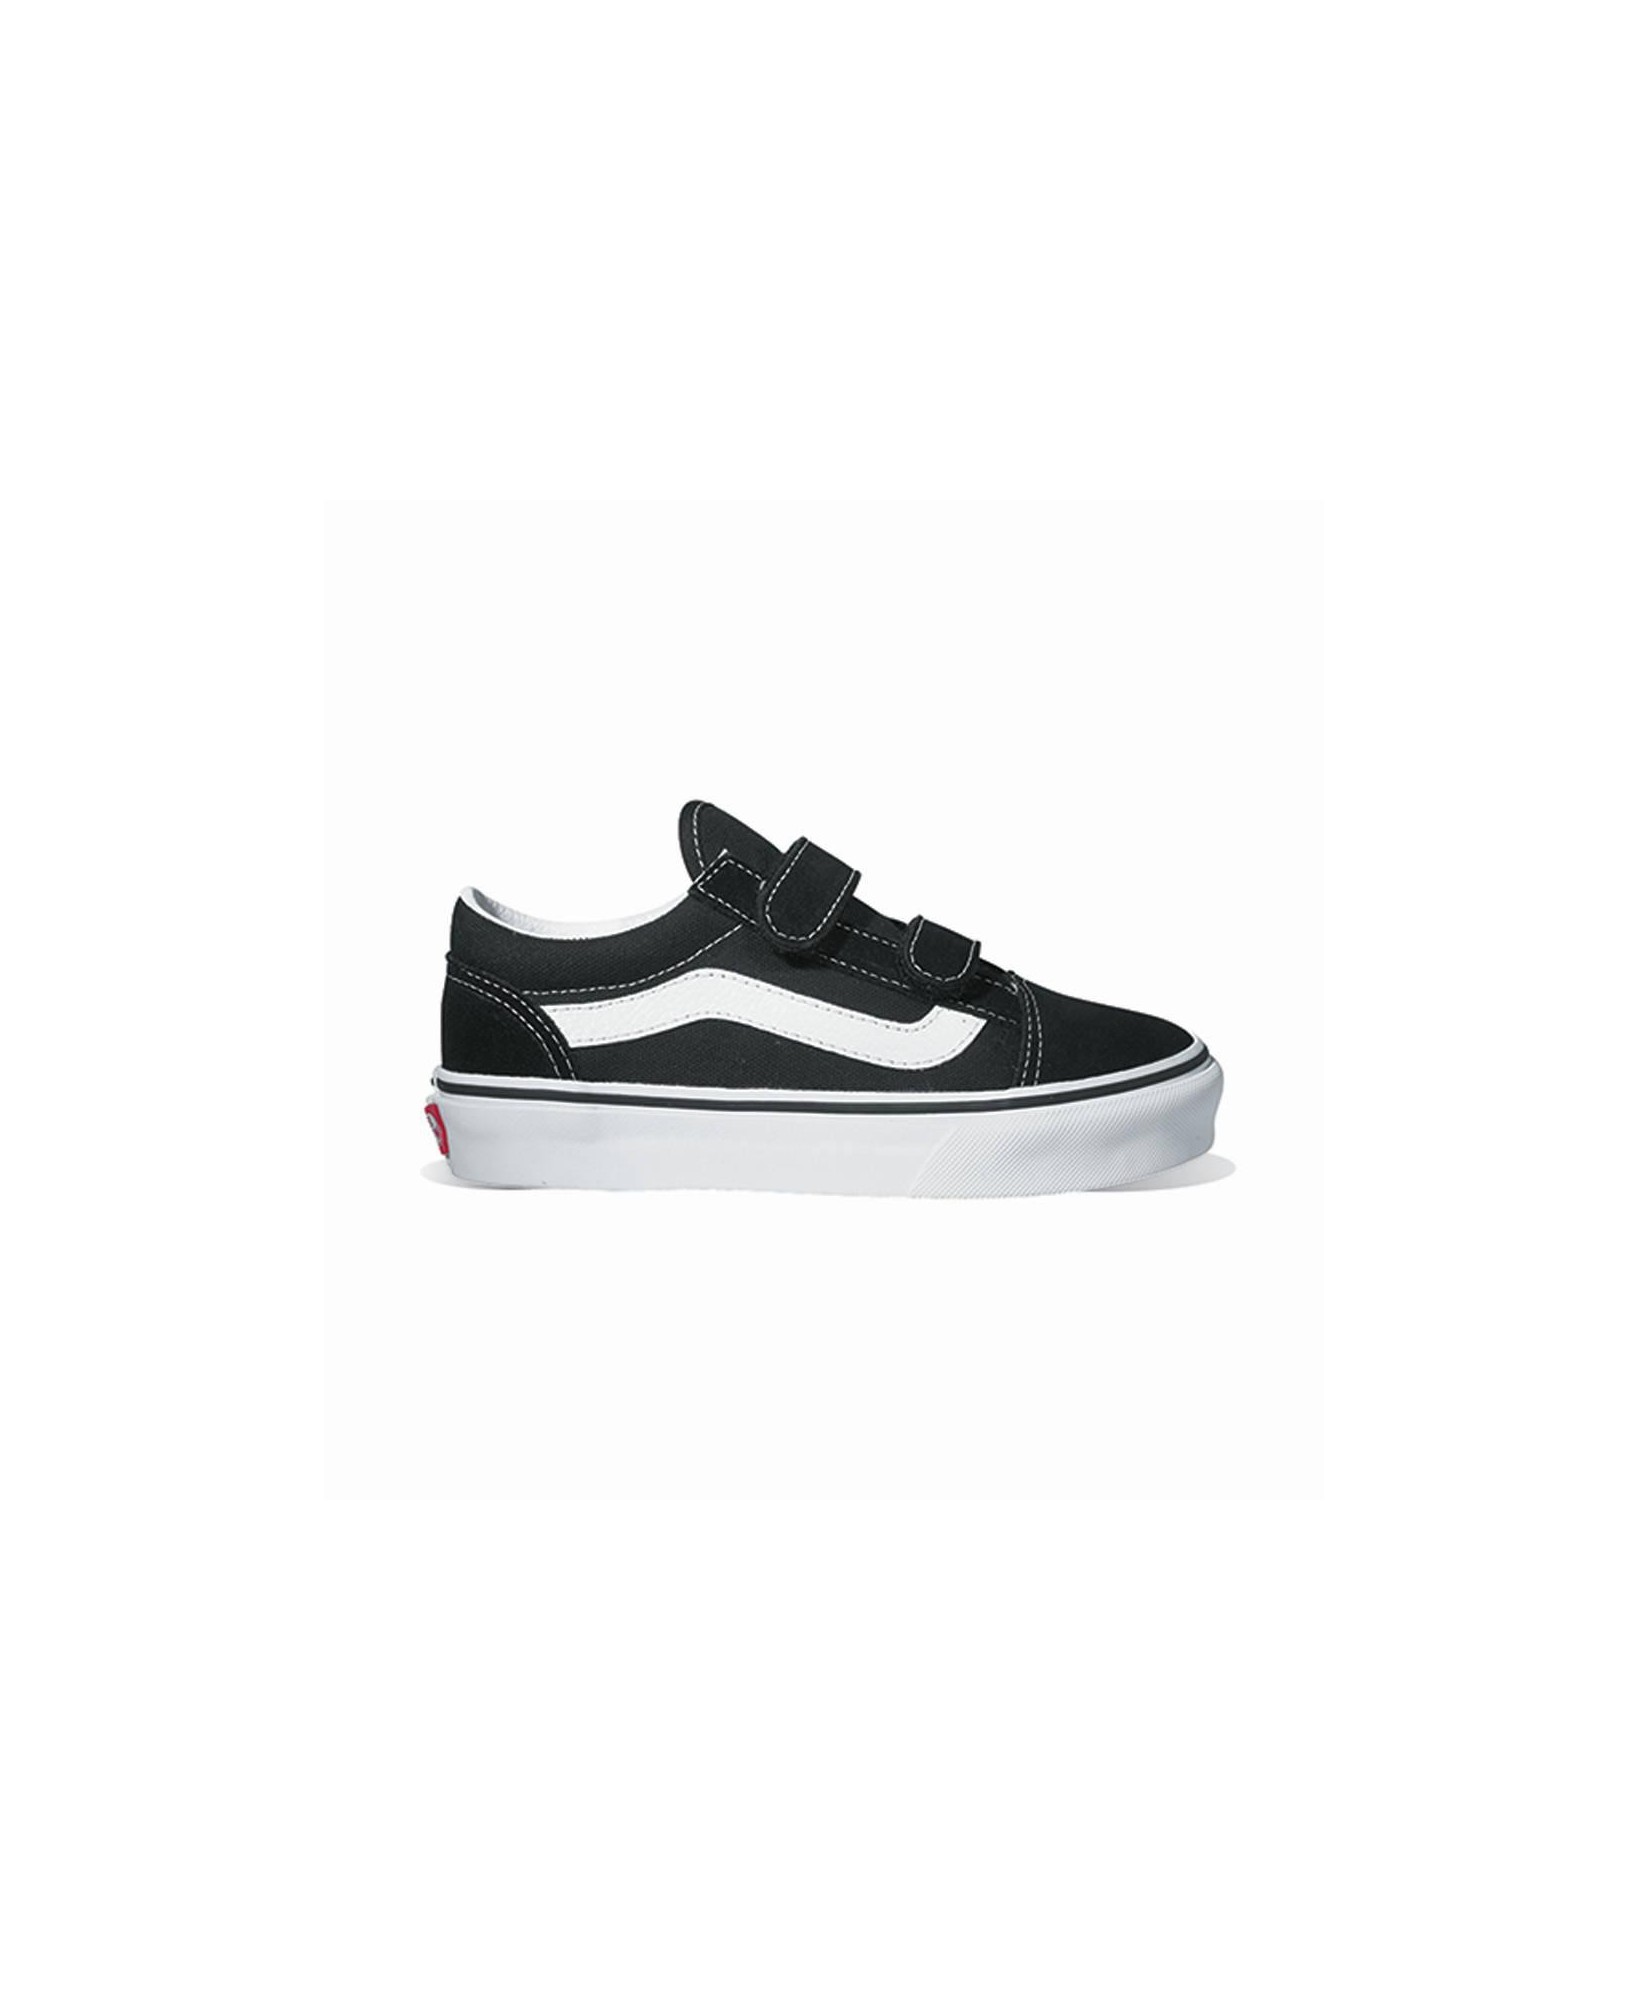 ZAPATILLAS JUNIOR OLD SKOOL (4-8 AÑOS) ZAPATILLAS JUNIOR OLD SKOOL (4-8 AÑOS)